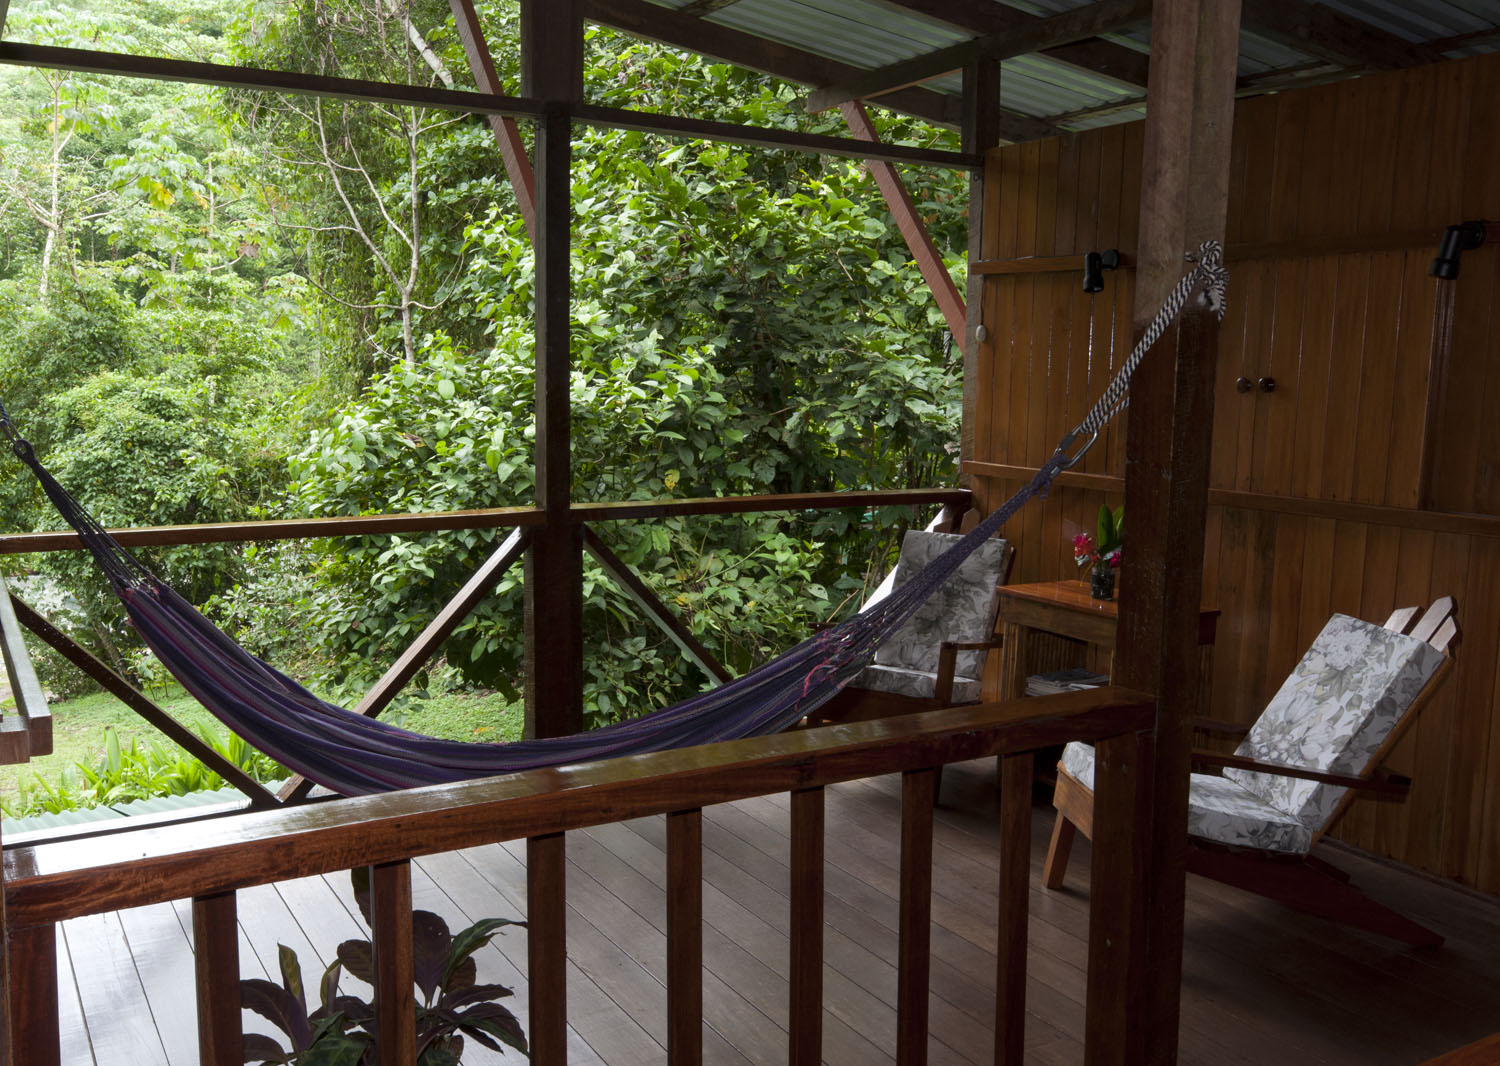 There are additional sitting areas on the second floor of the lodge, which provides great views of the forest